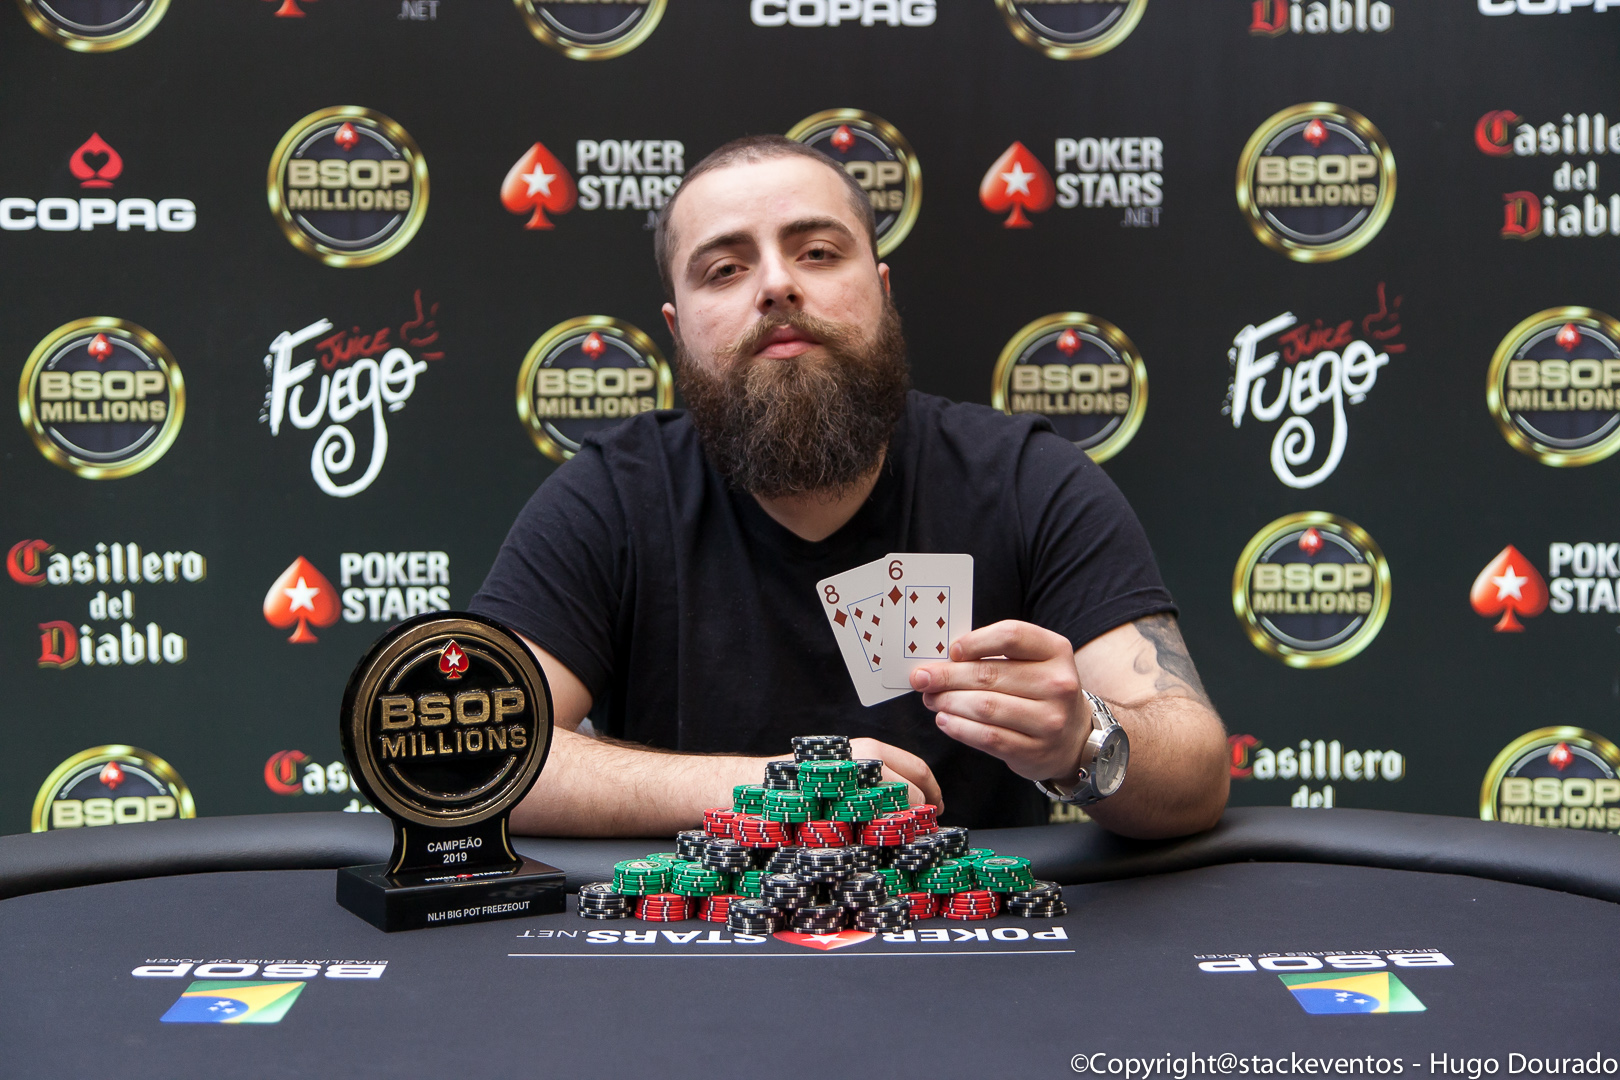 Lorenzo Bazei campeão do Big Pot Freezeout do BSOP Millions